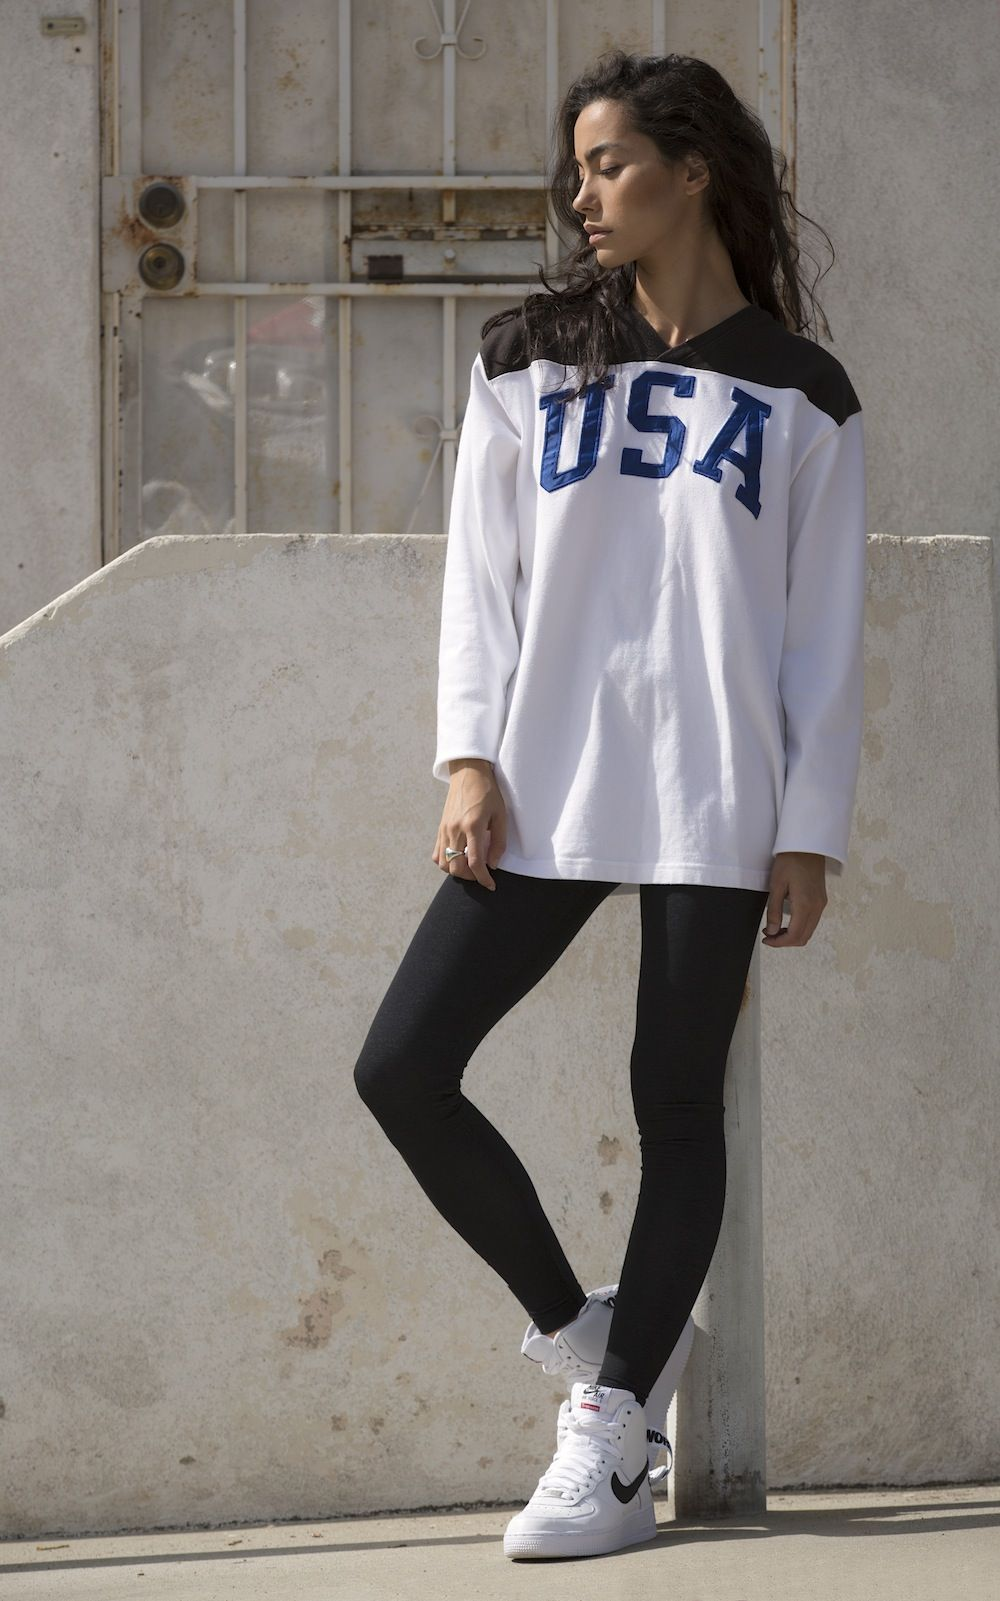 new arrival 703ce b4c8d ... Fashion · world famous · Air Force 1 ... Girl wearing ...